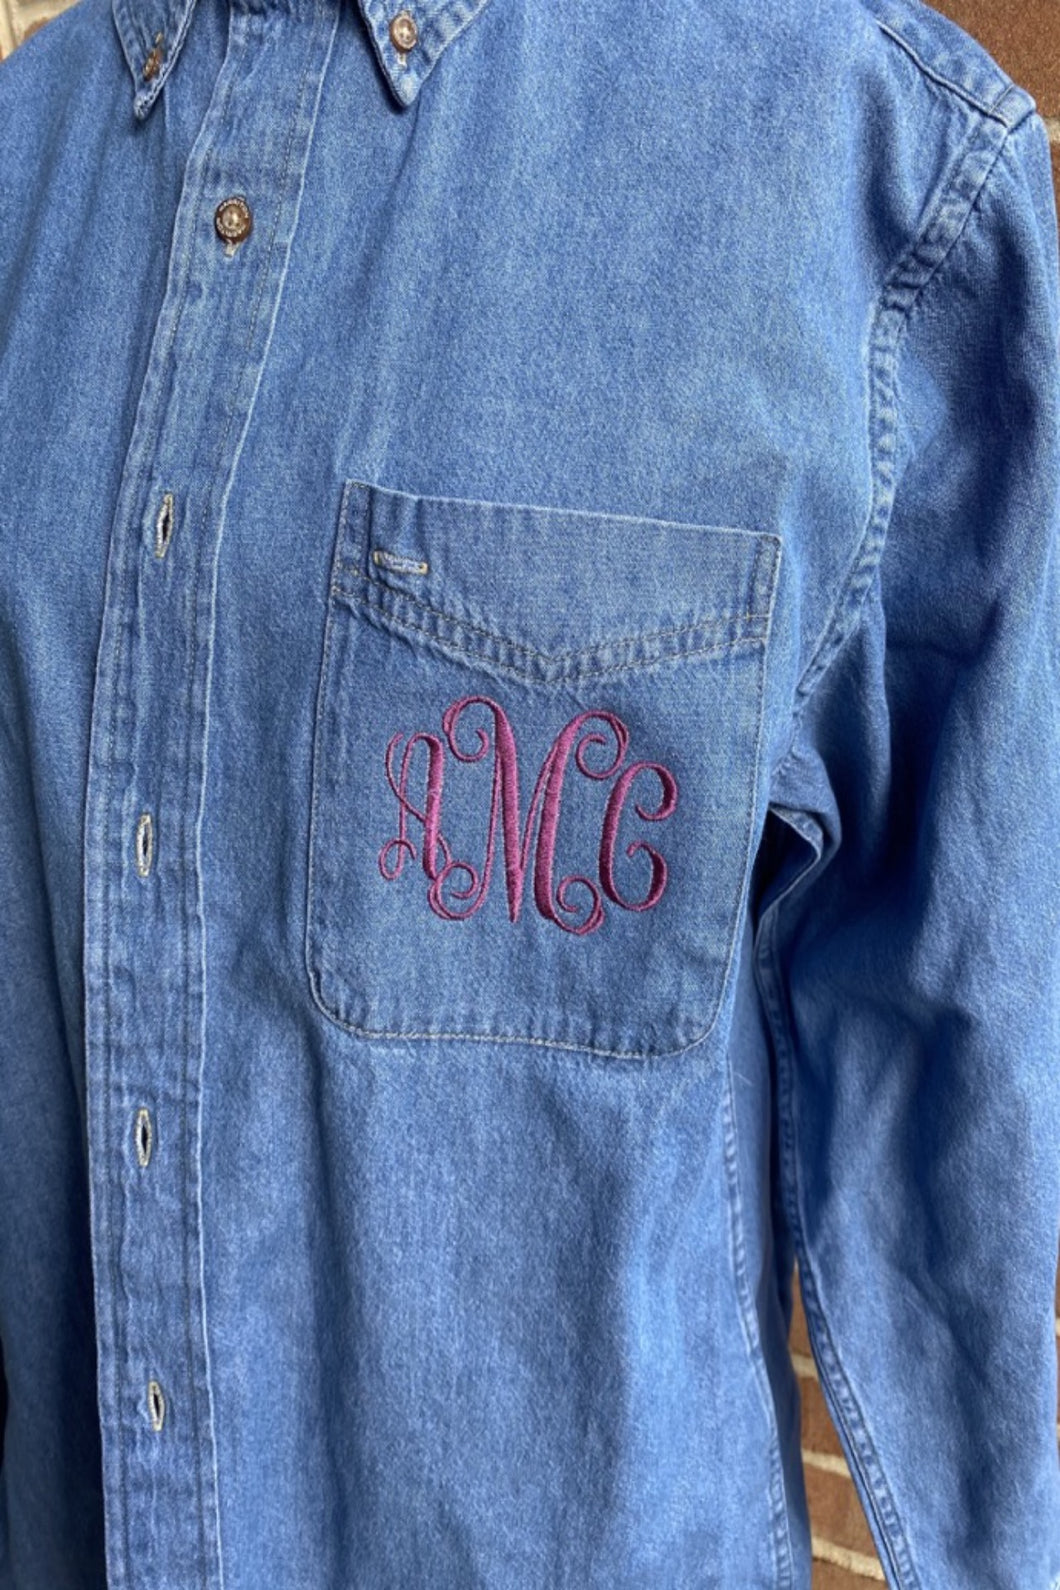 Monogram Denim Bridesmaid Button Down - Bridesmaid